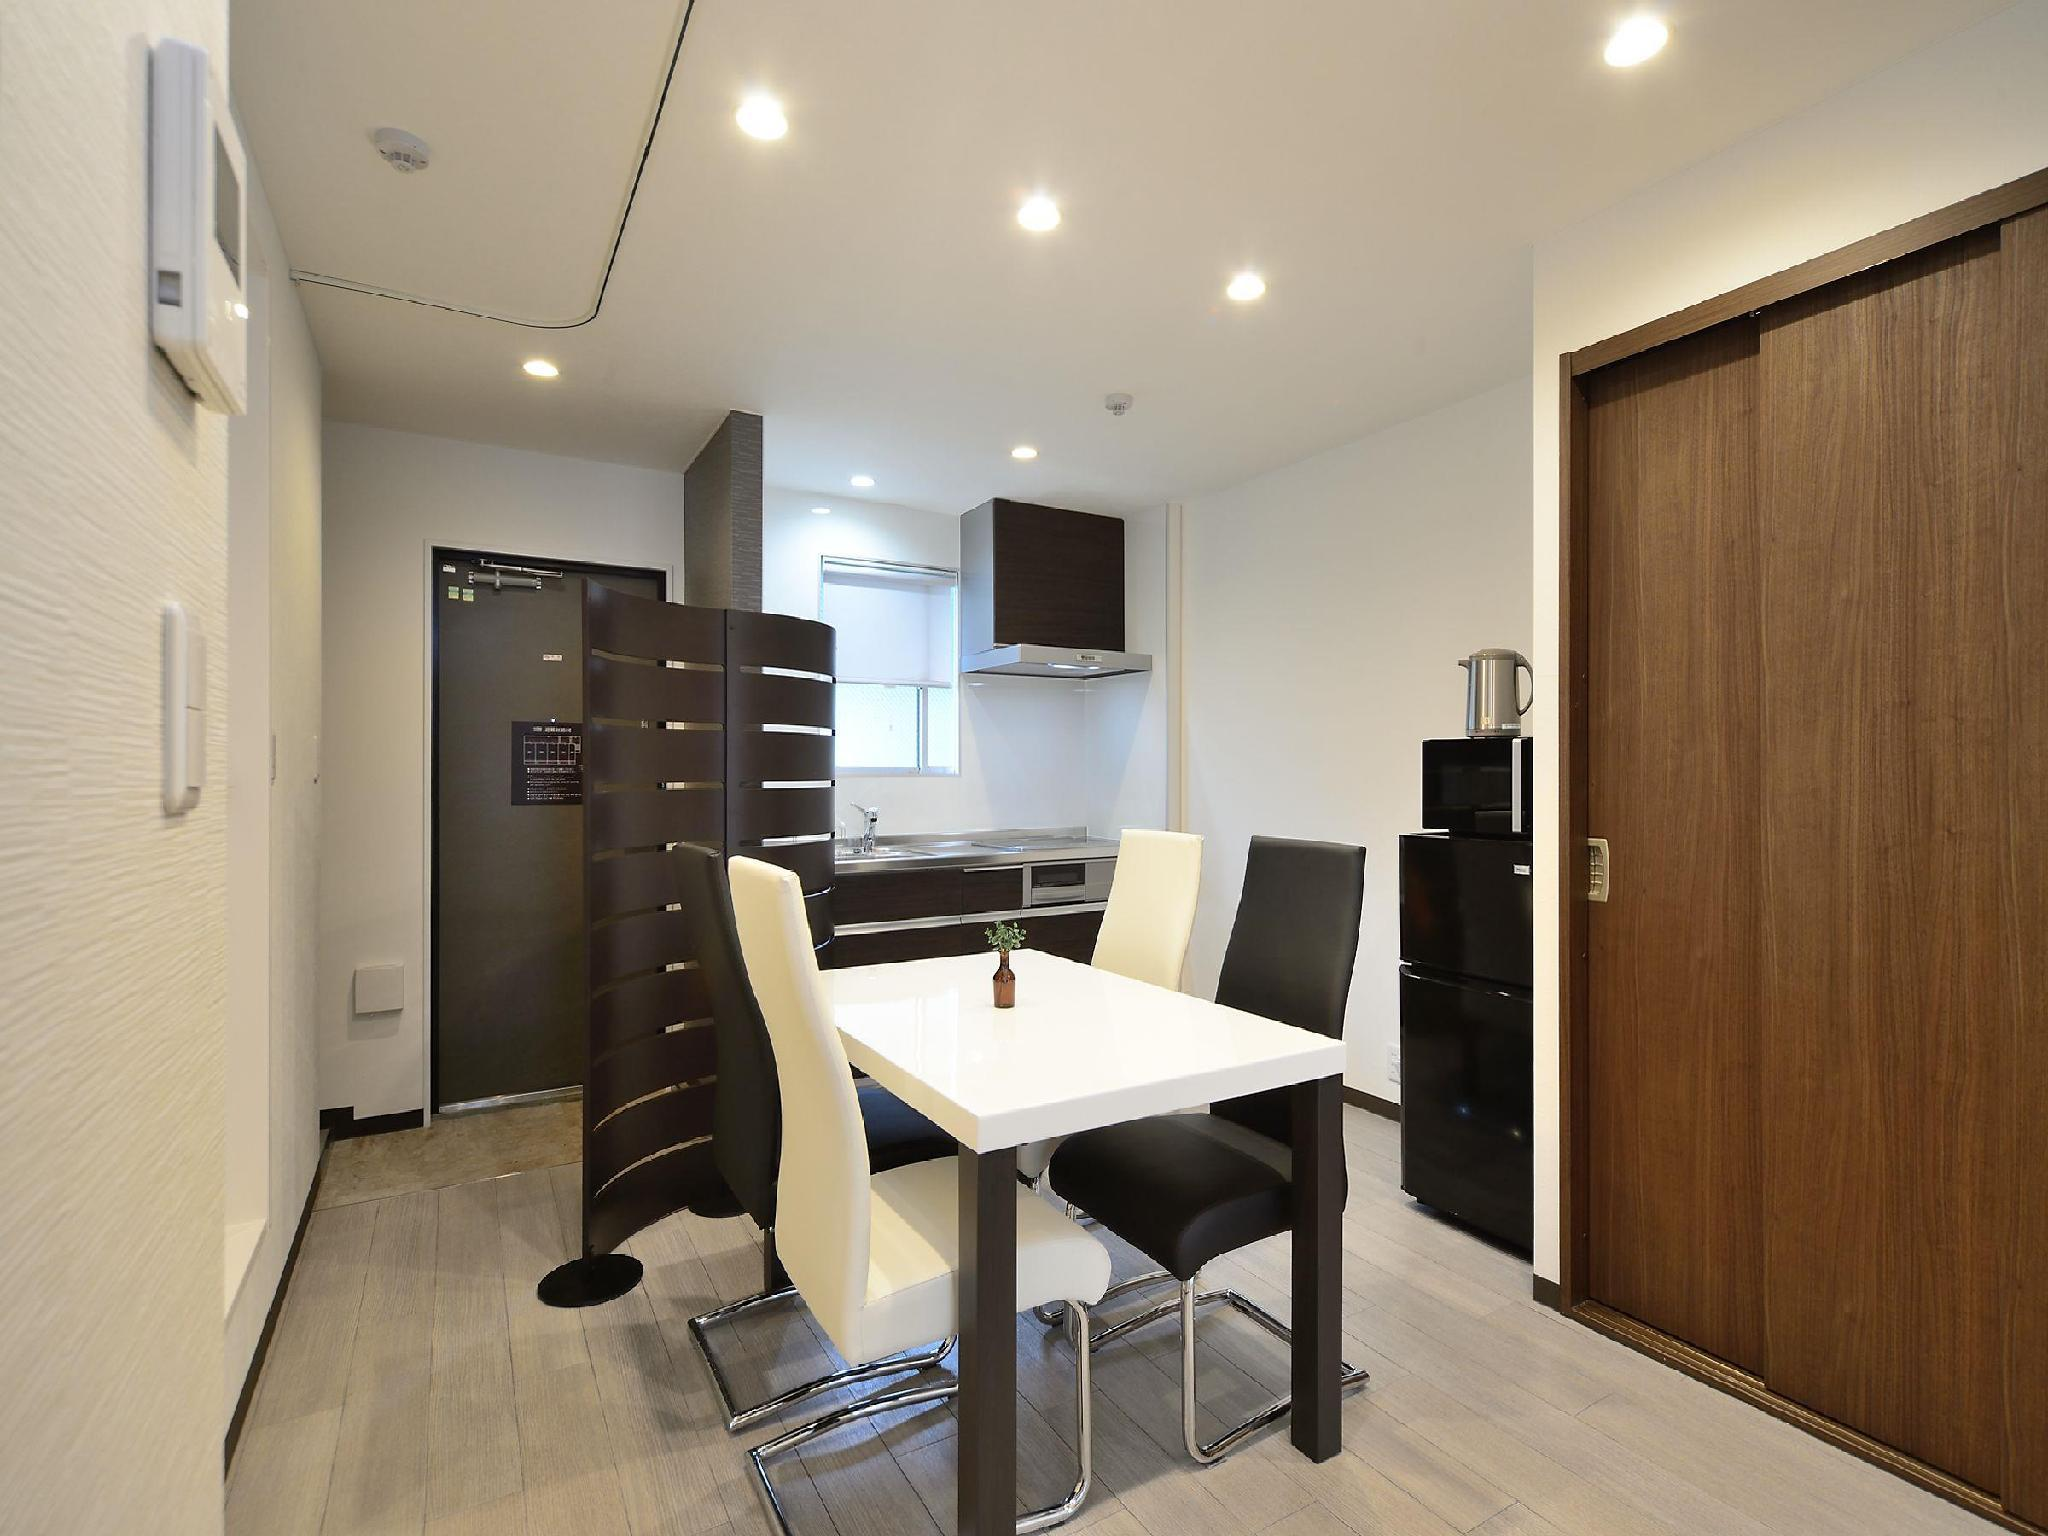 2 - Bedroom Apartment